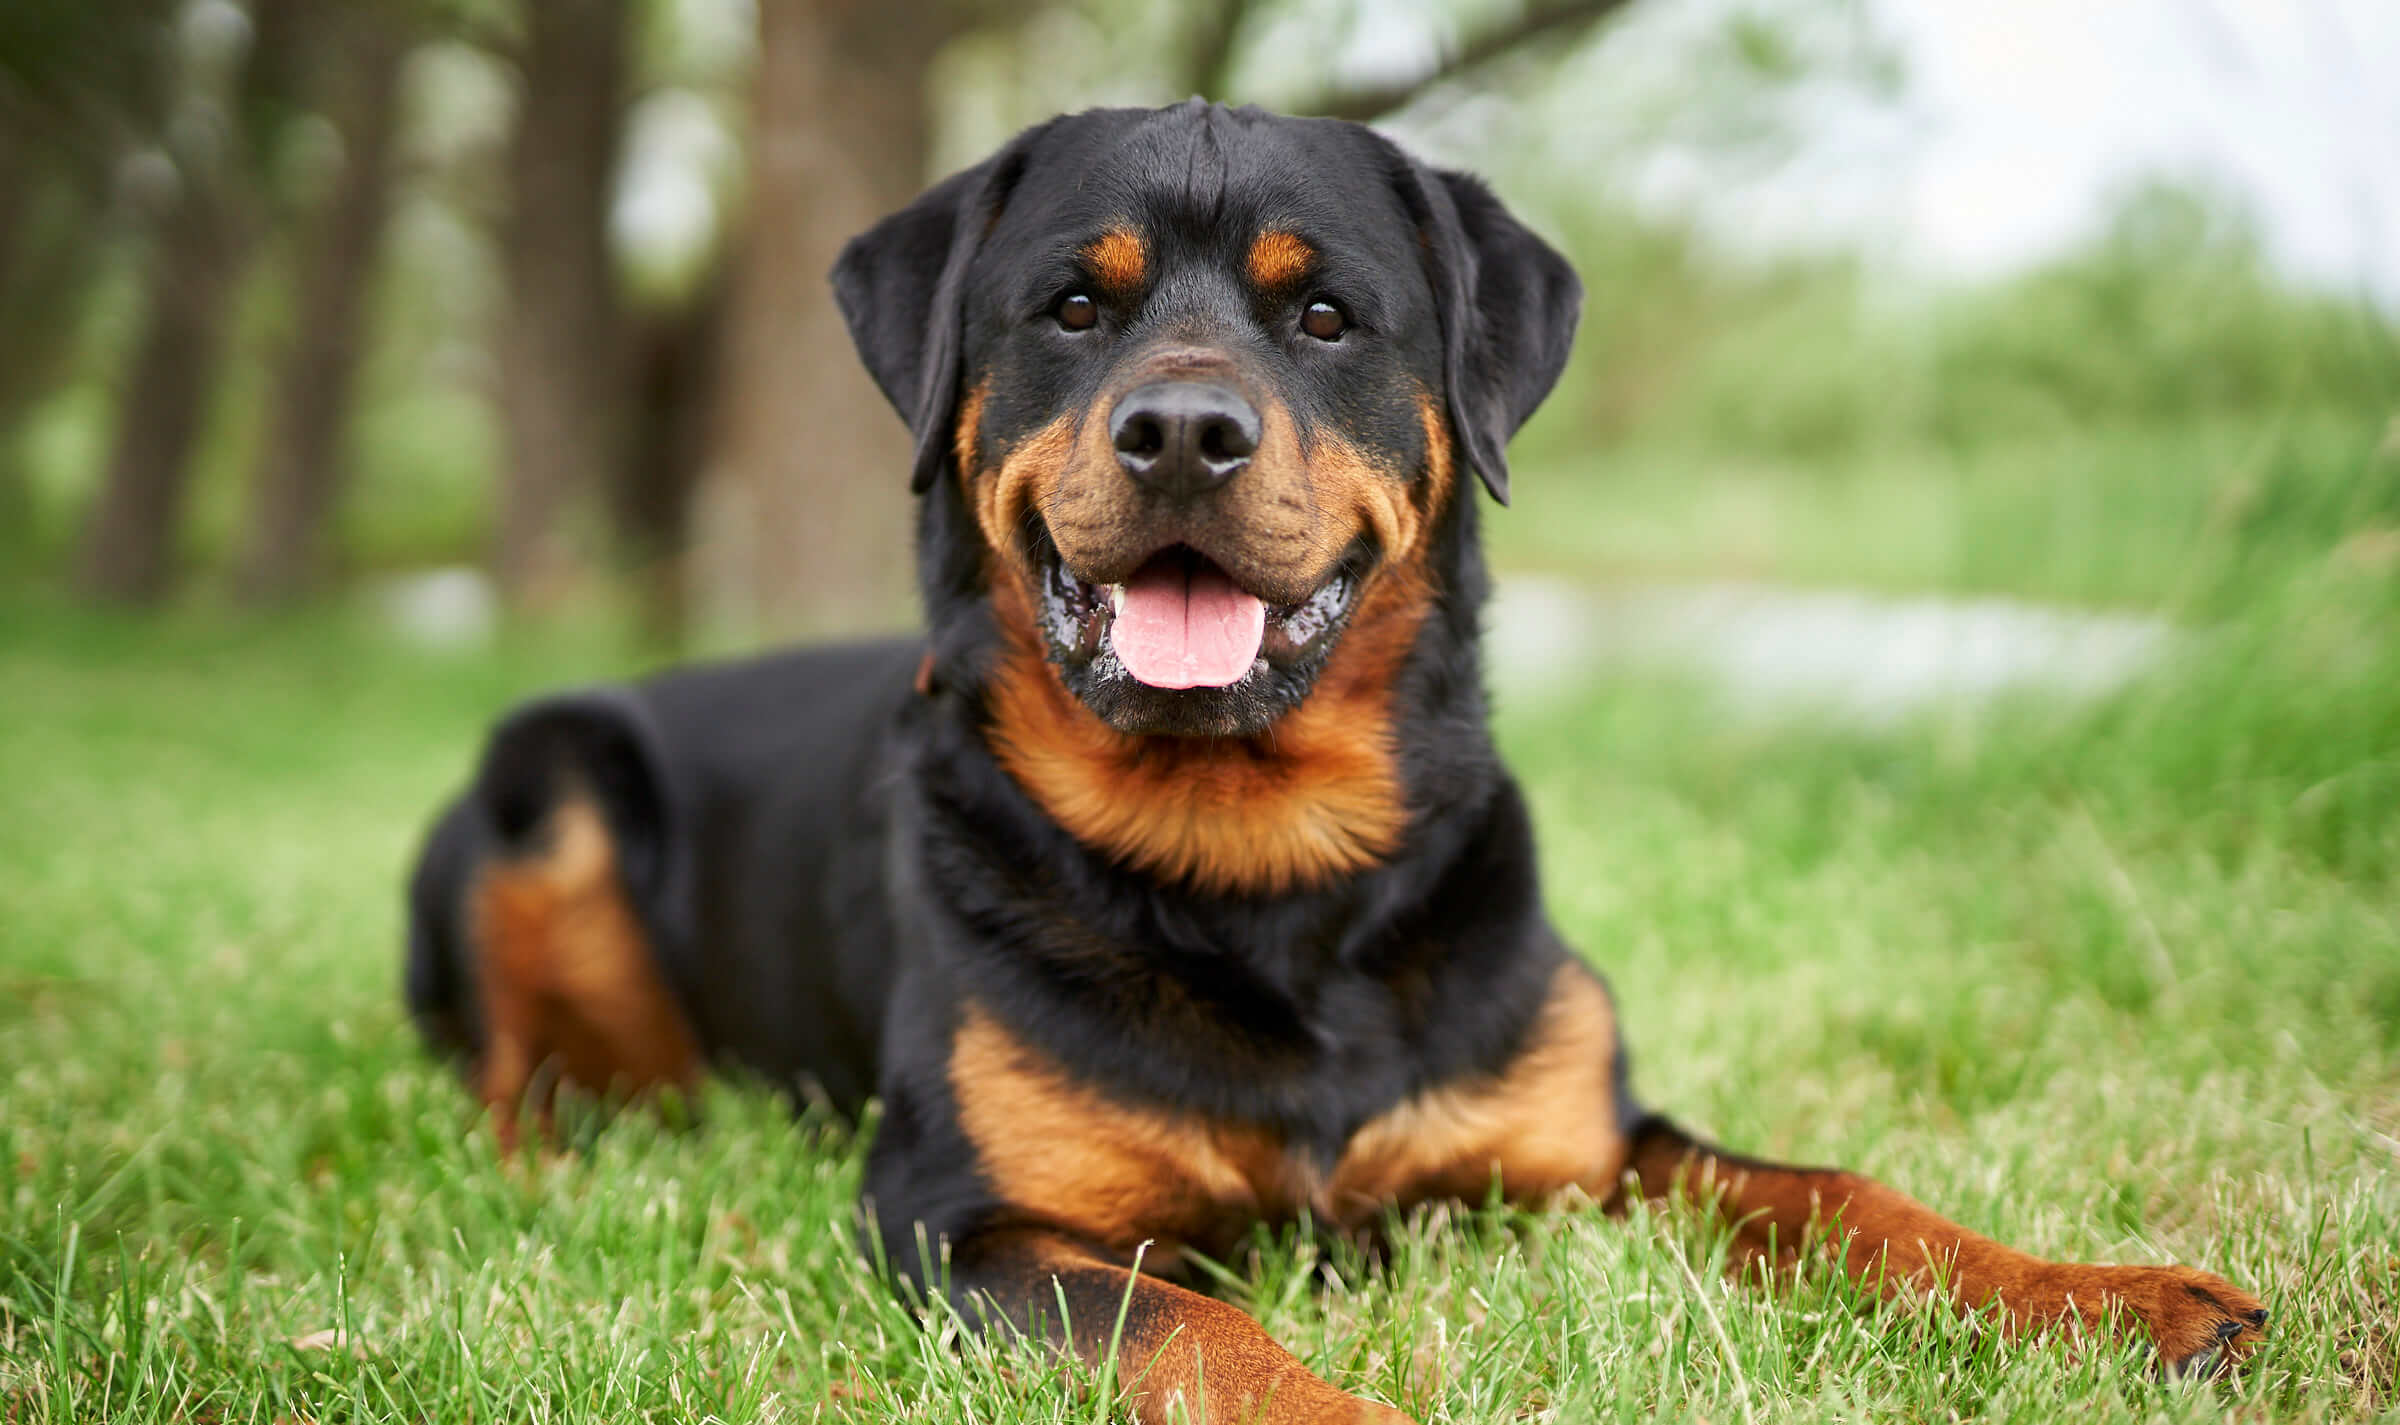 Basco the Rottweiler dog, pet portrait in Spokane Washington